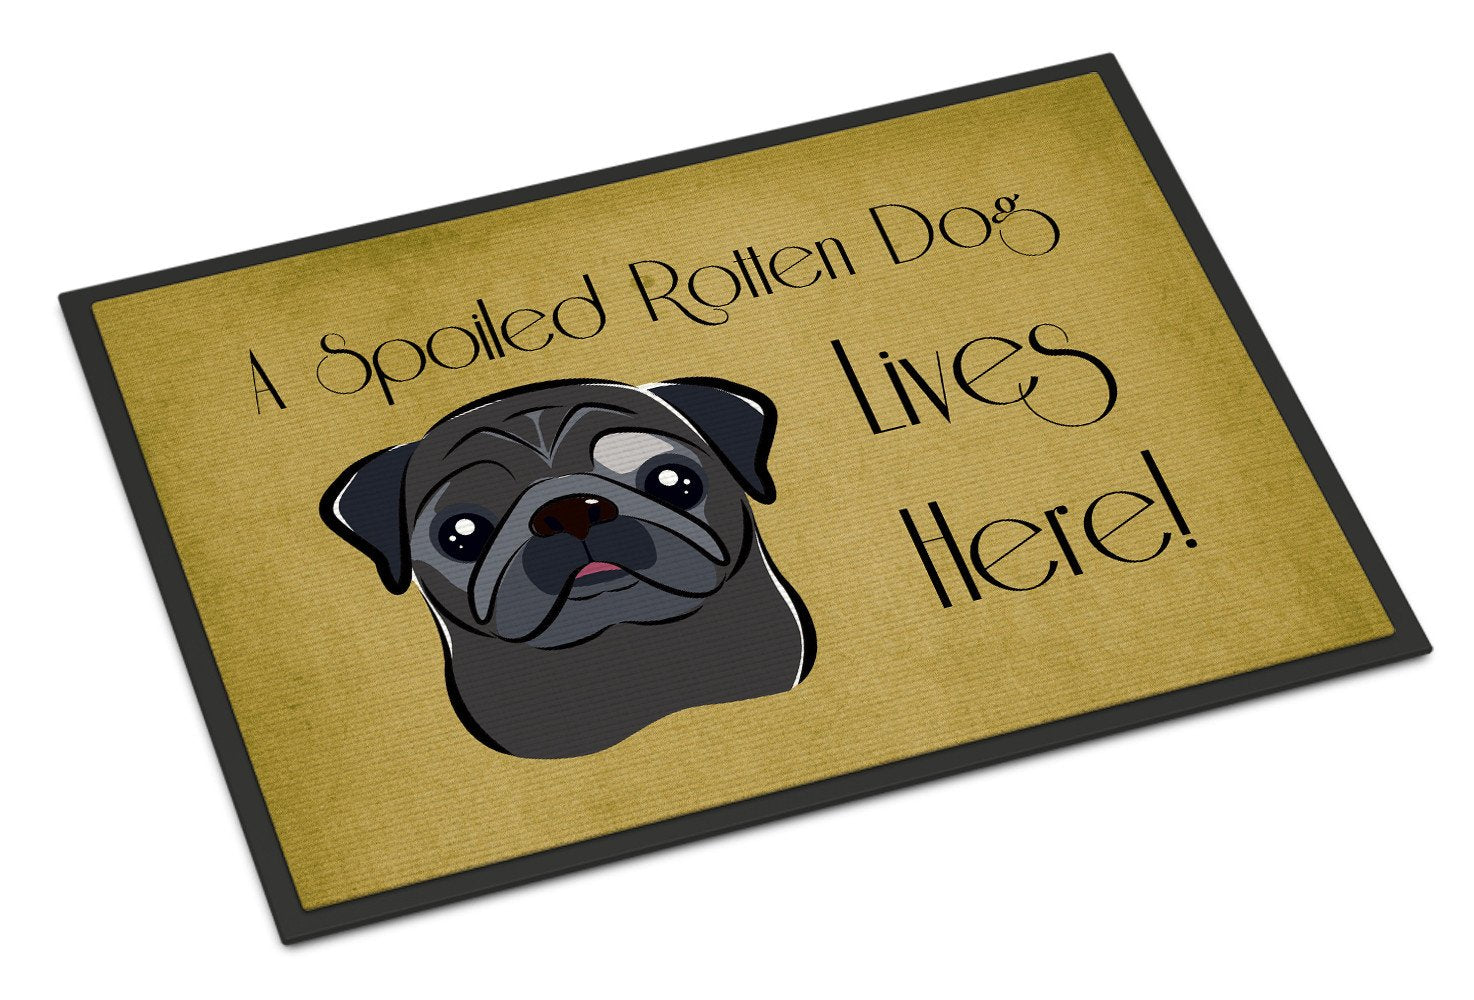 Black Pug Spoiled Dog Lives Here Indoor or Outdoor Mat 18x27 BB1511MAT - the-store.com